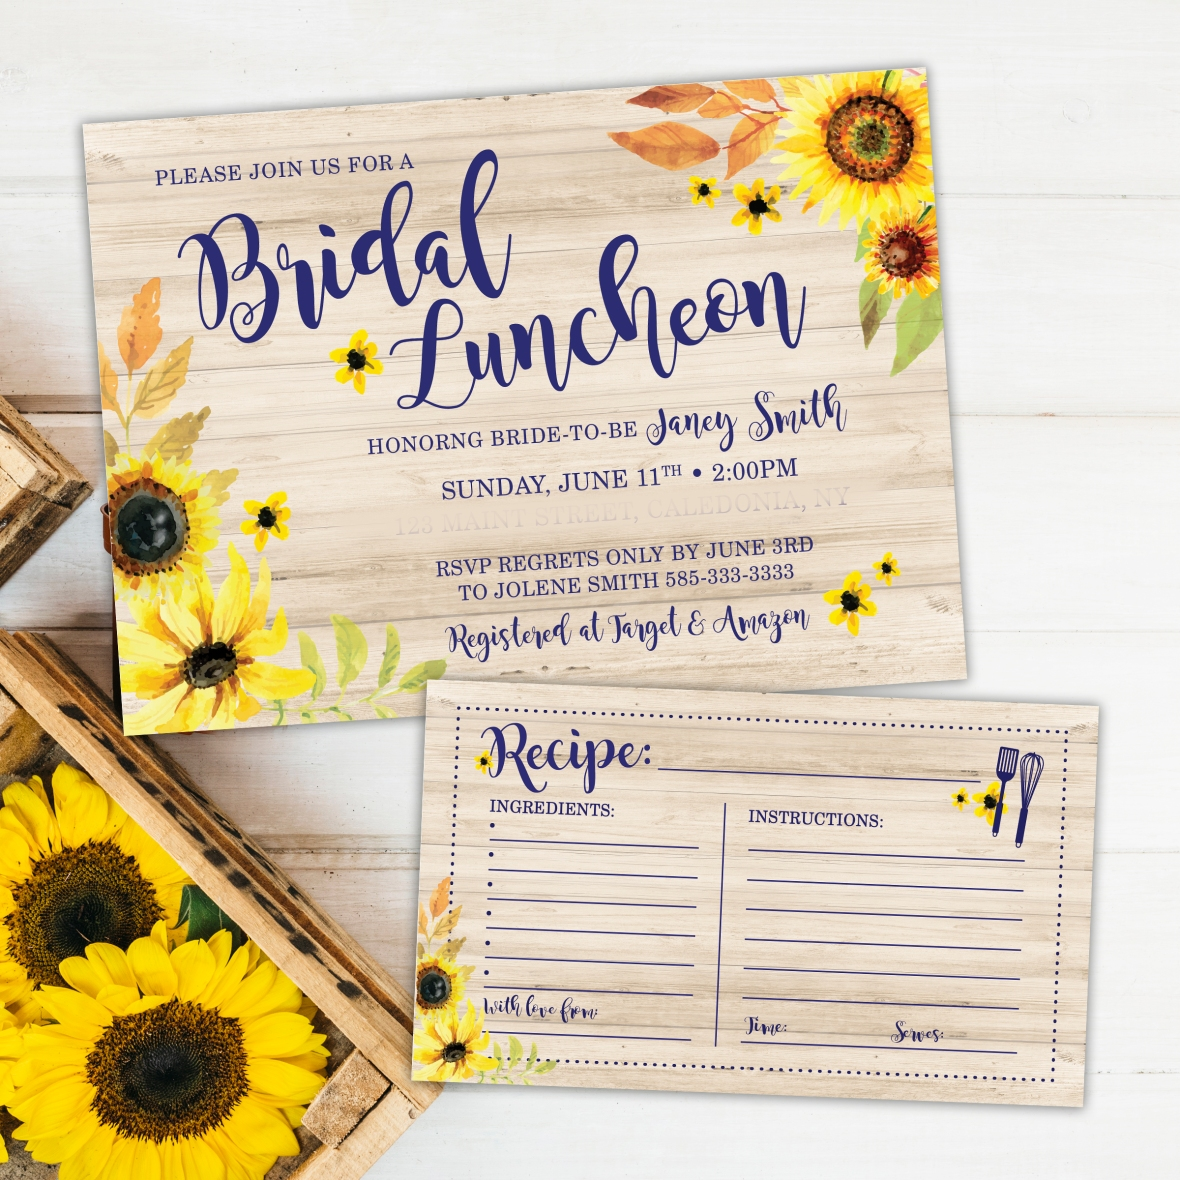 Sunflower Bridal Shower Invitations, Sunflower Recipe Card, Bridal Luncheon Invitations